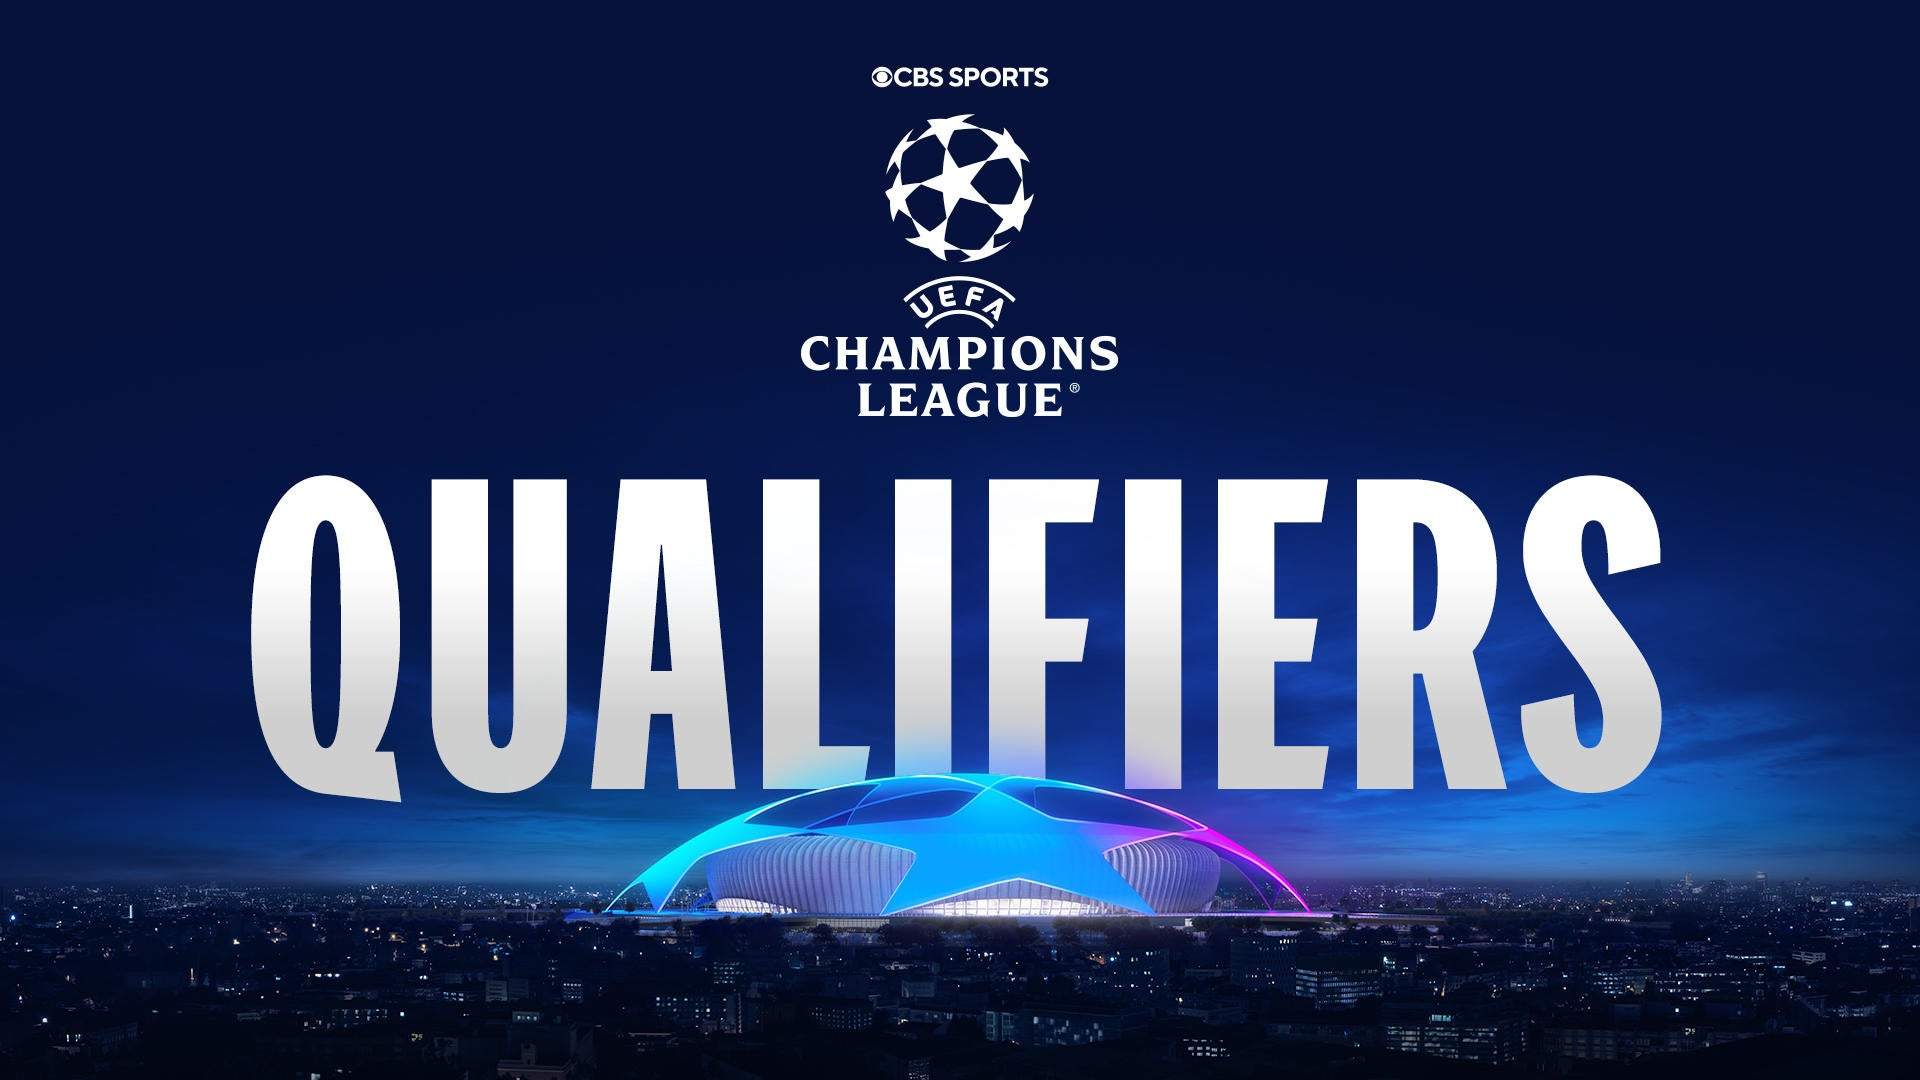 champions-qualifiers